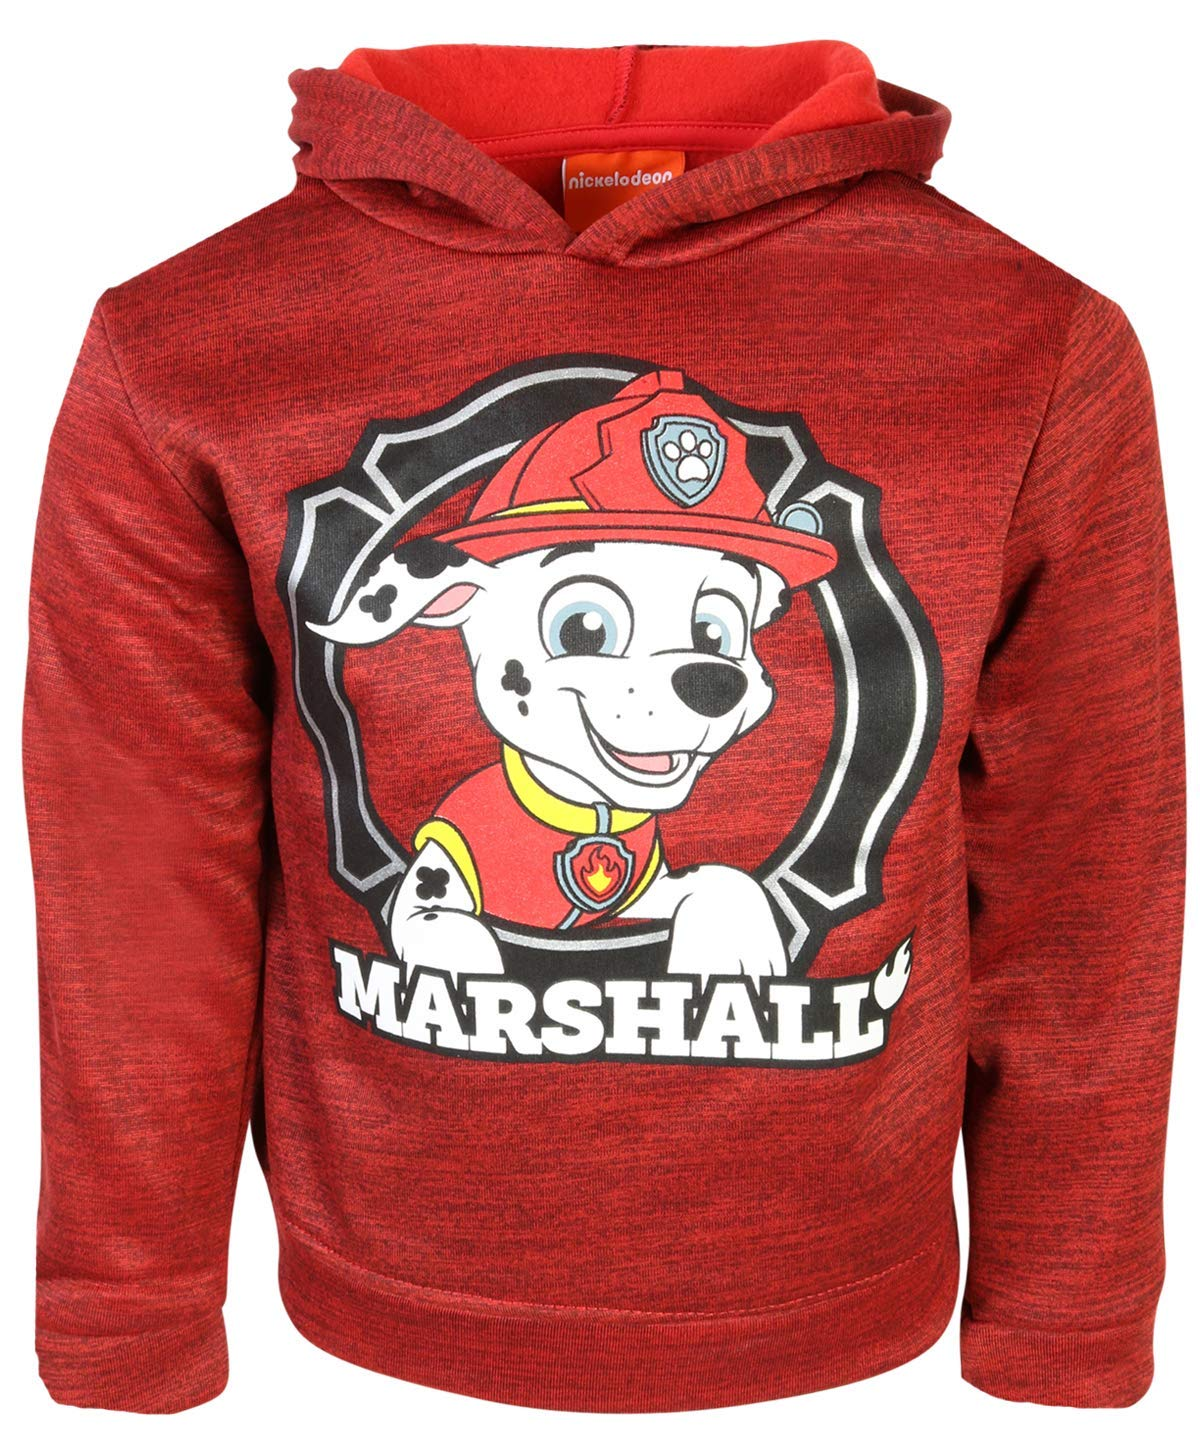 Nickelodeon Paw Patrol Boys Fleece Pullover Hoodie, Red Marshall, Size 4T'